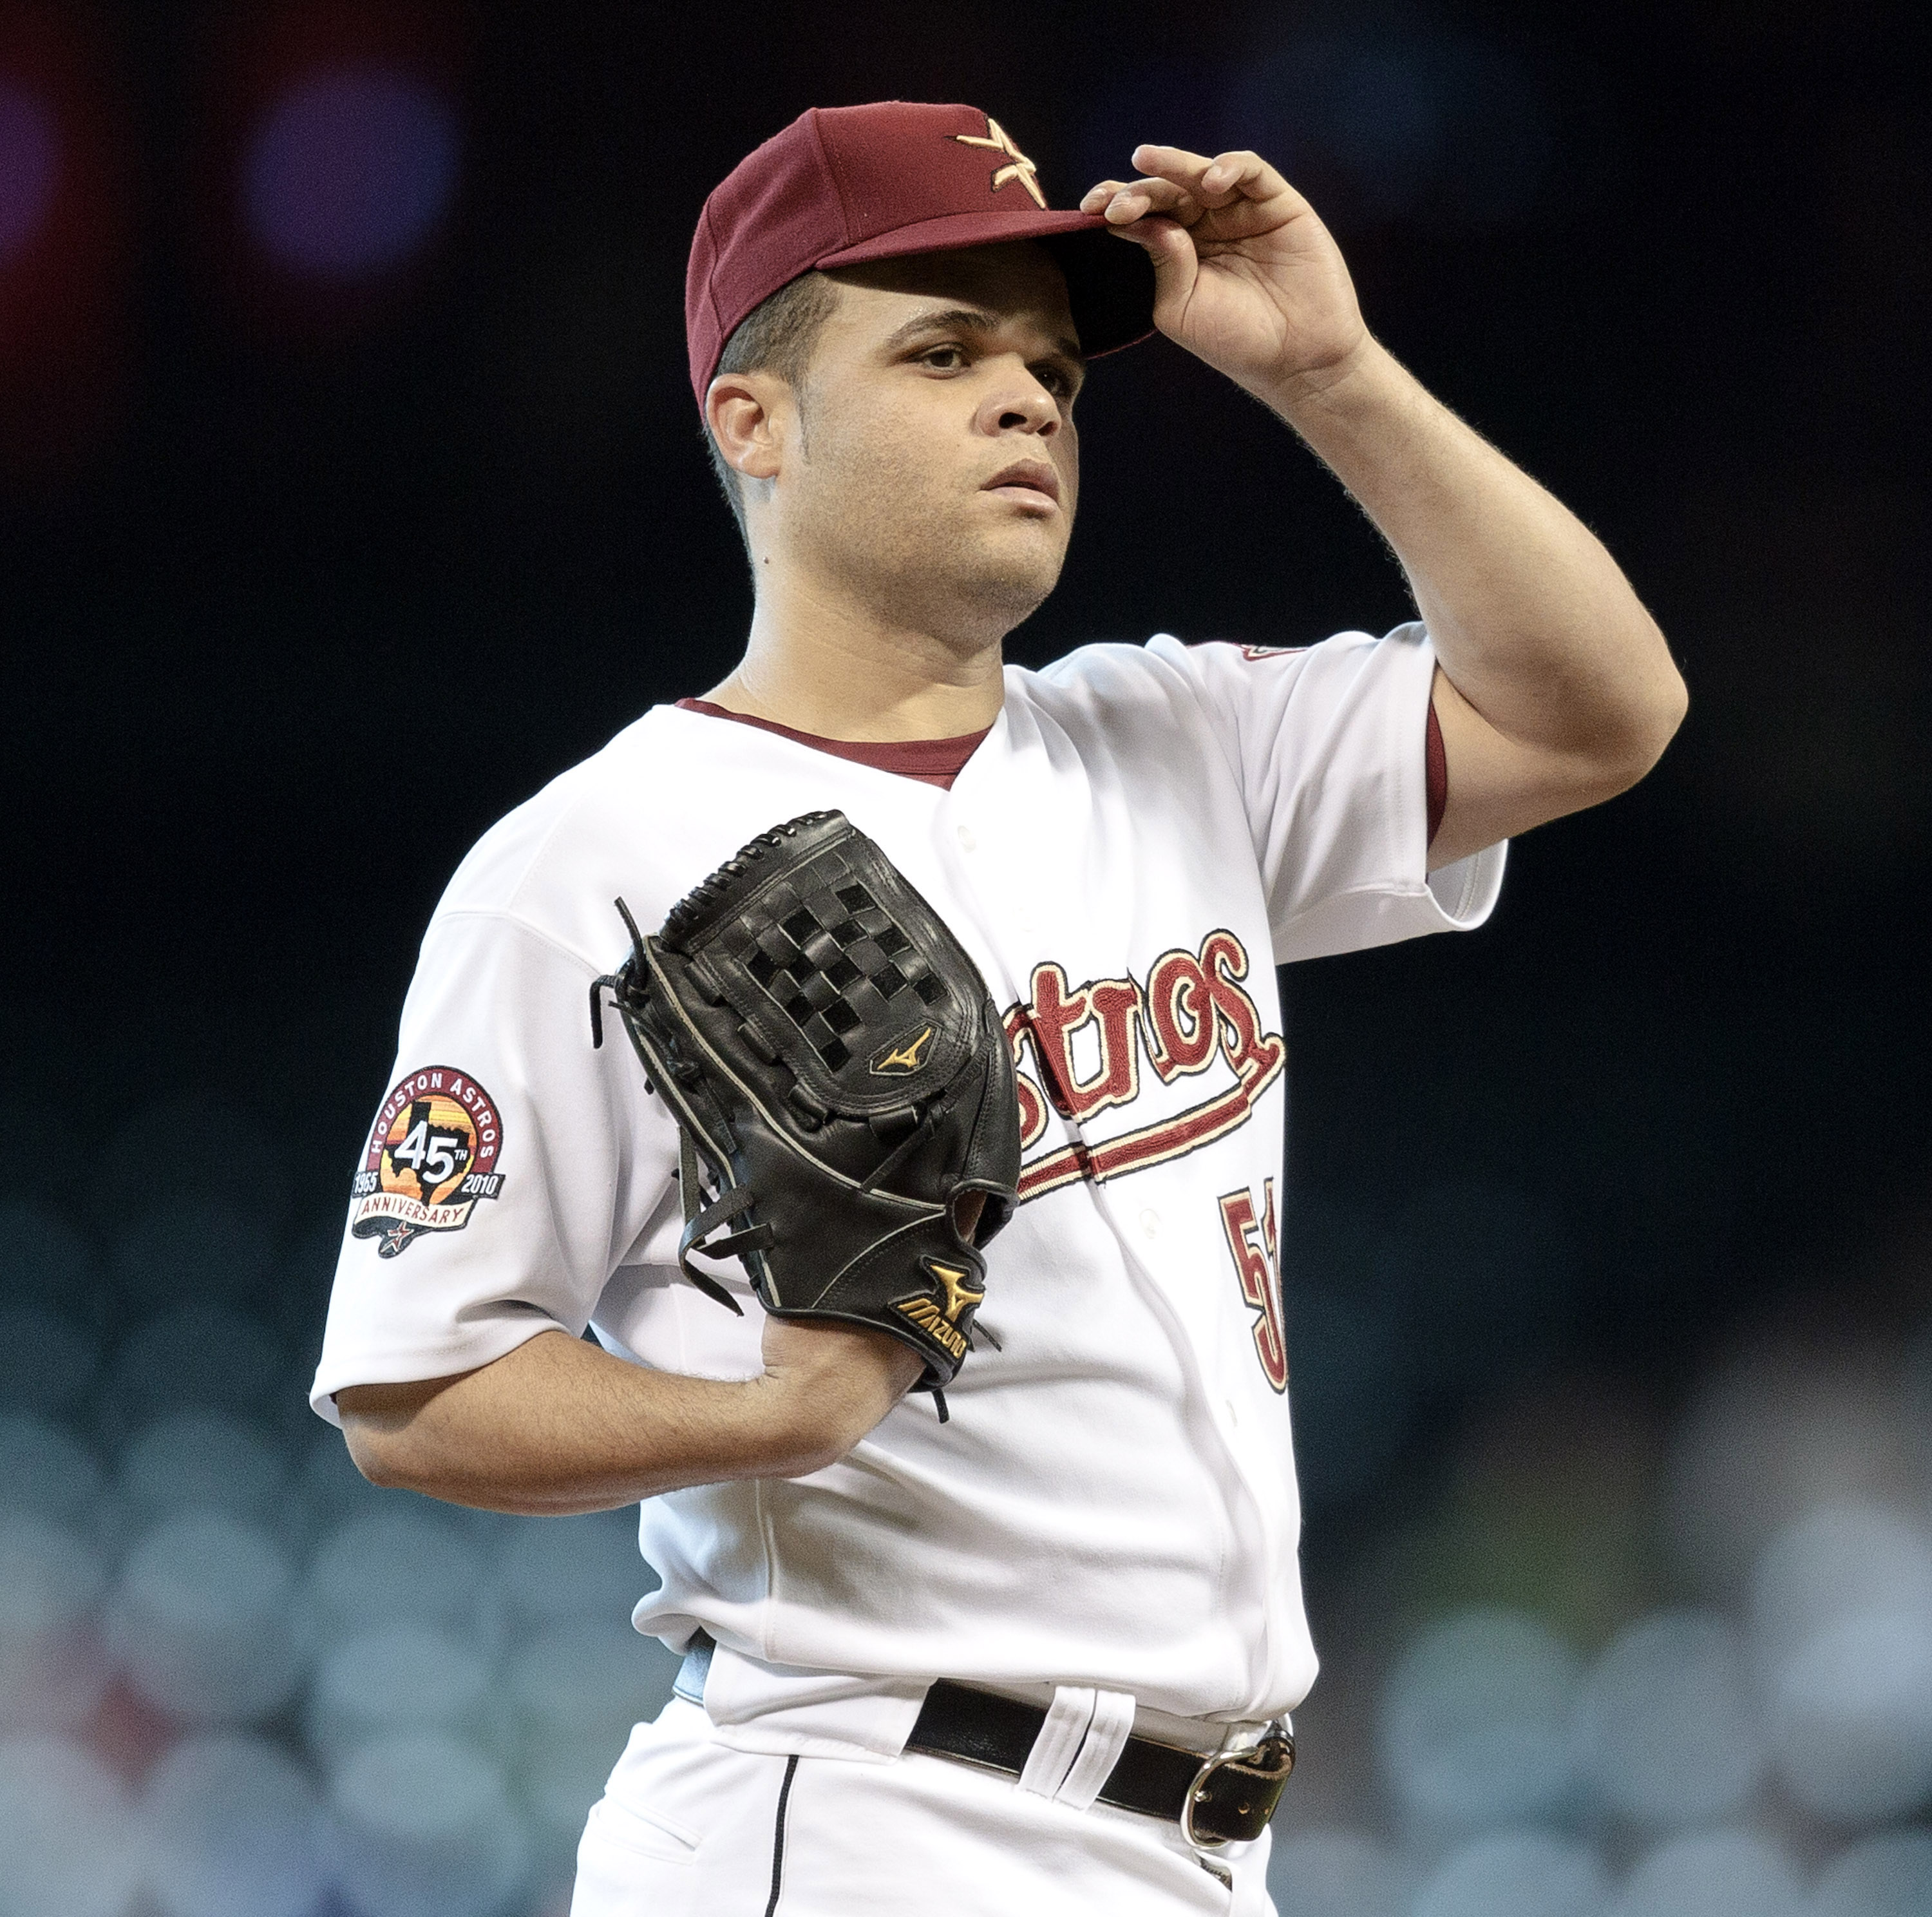 HOUSTON - JUNE 24:  Pitcher Wandy Rodriguez #51 of the Houston Astros in the first inning against the San Francisco Giants at Minute Maid Park on June 24, 2010 in Houston, Texas.  (Photo by Bob Levey/Getty Images)